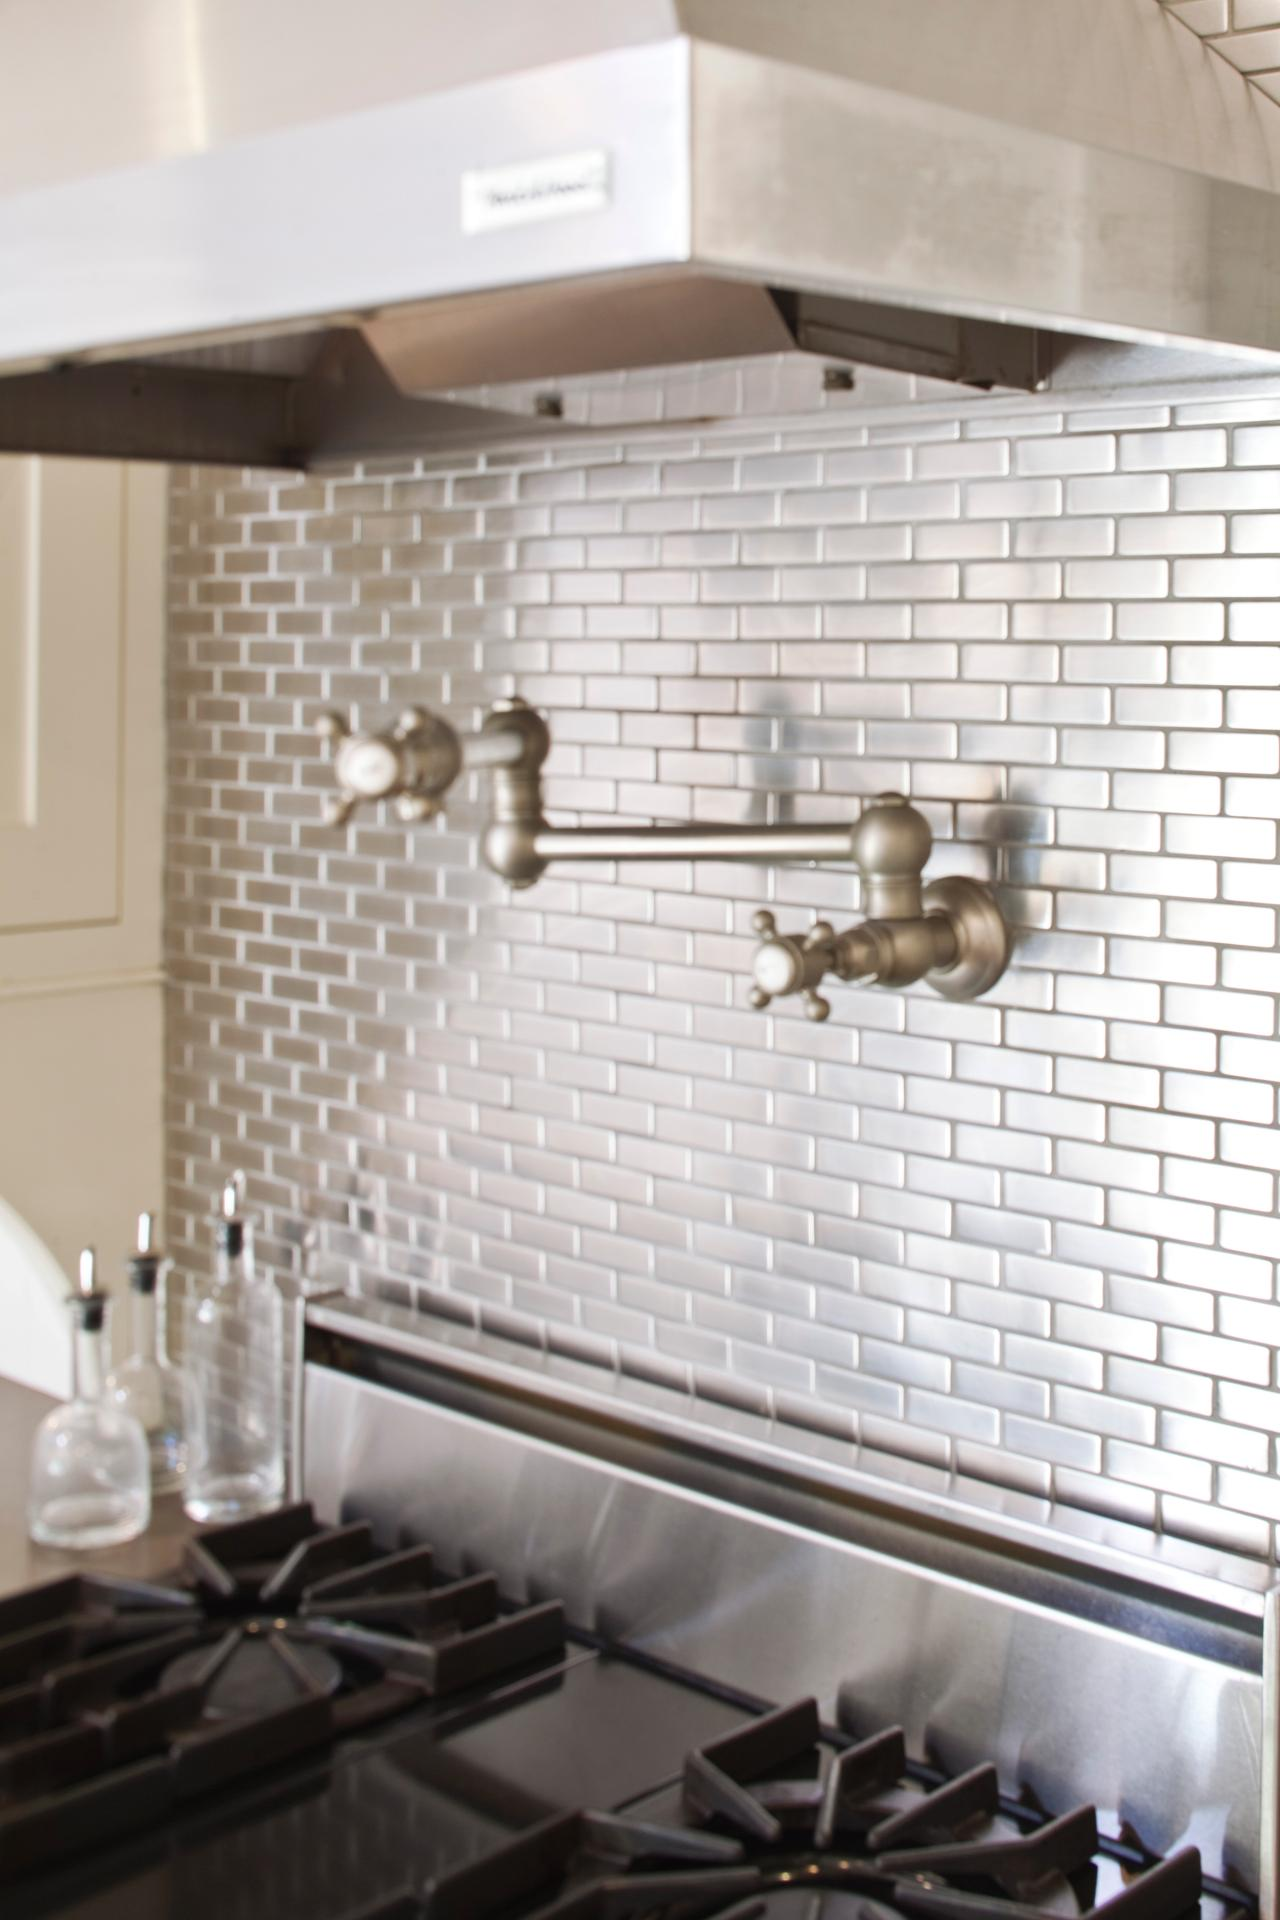 Https Www Bkckitchenandbath Com Make A Splash With These Backsplash Designs